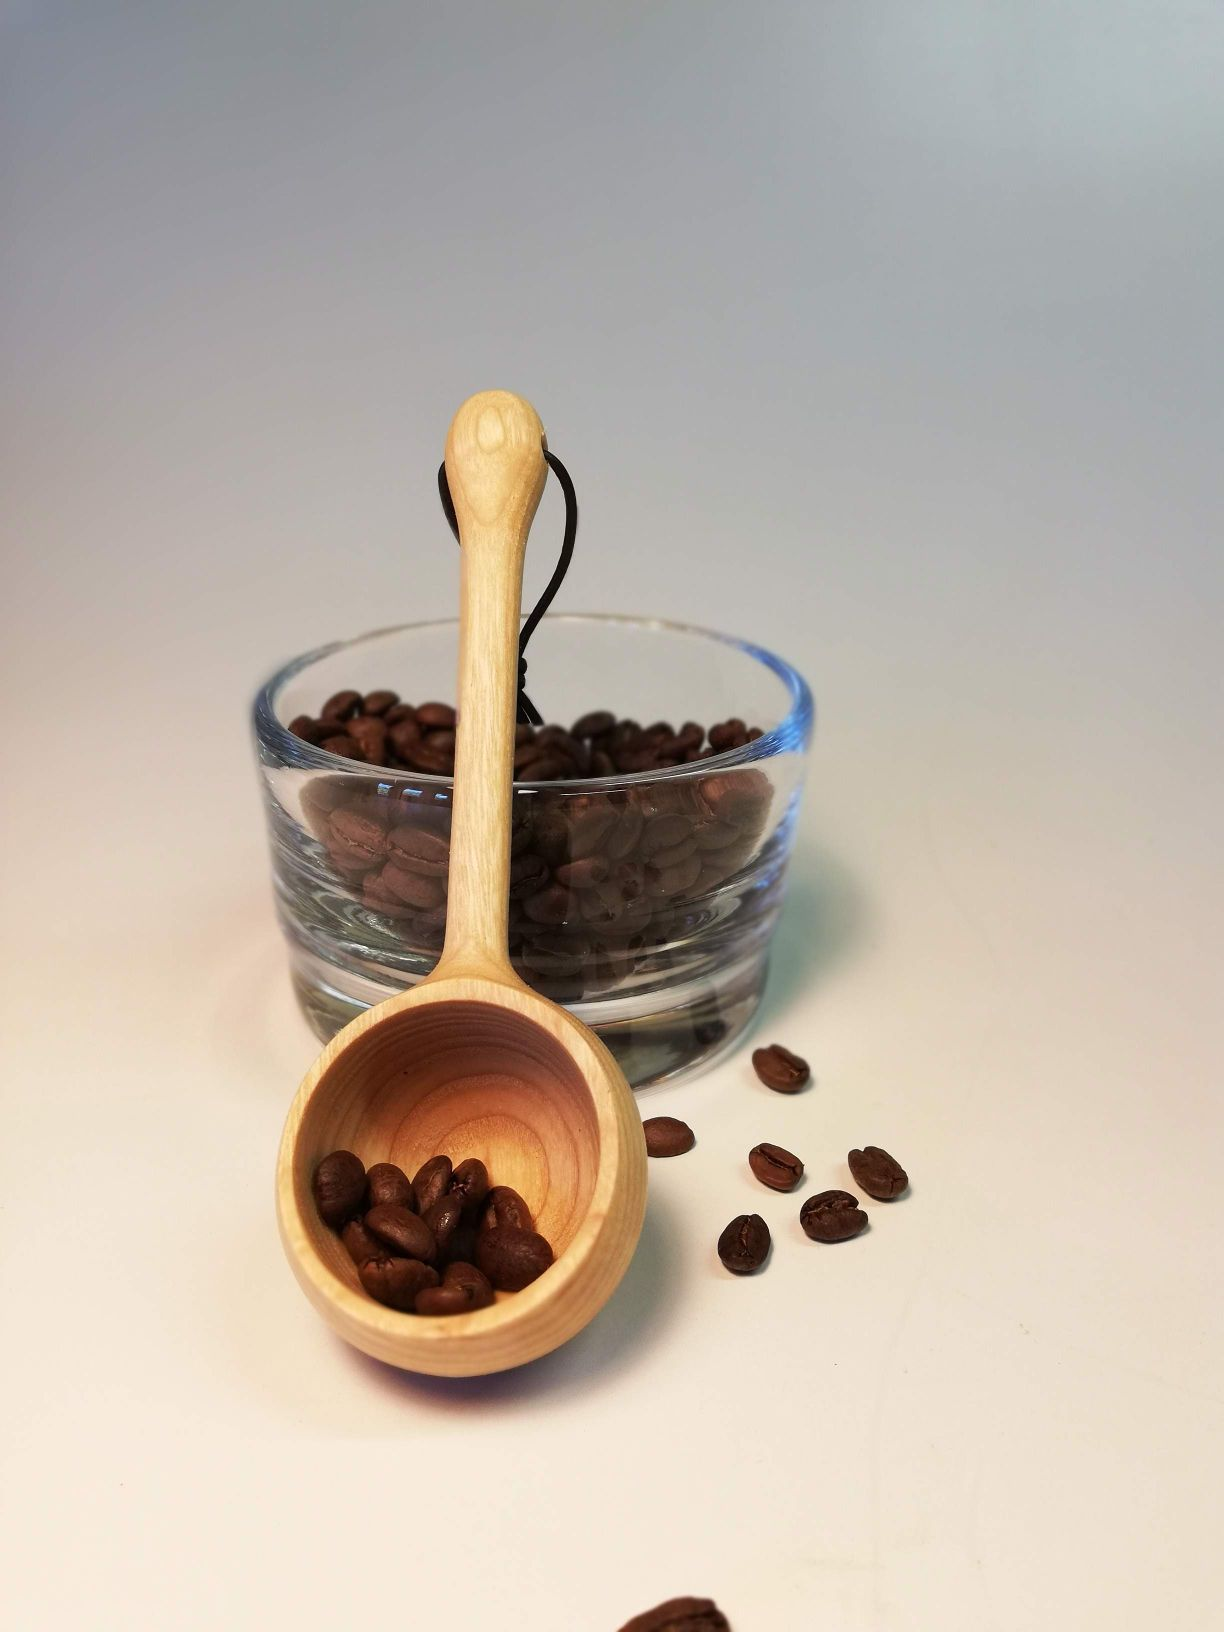 wooden coffee scoop made by eoghan leadbetter